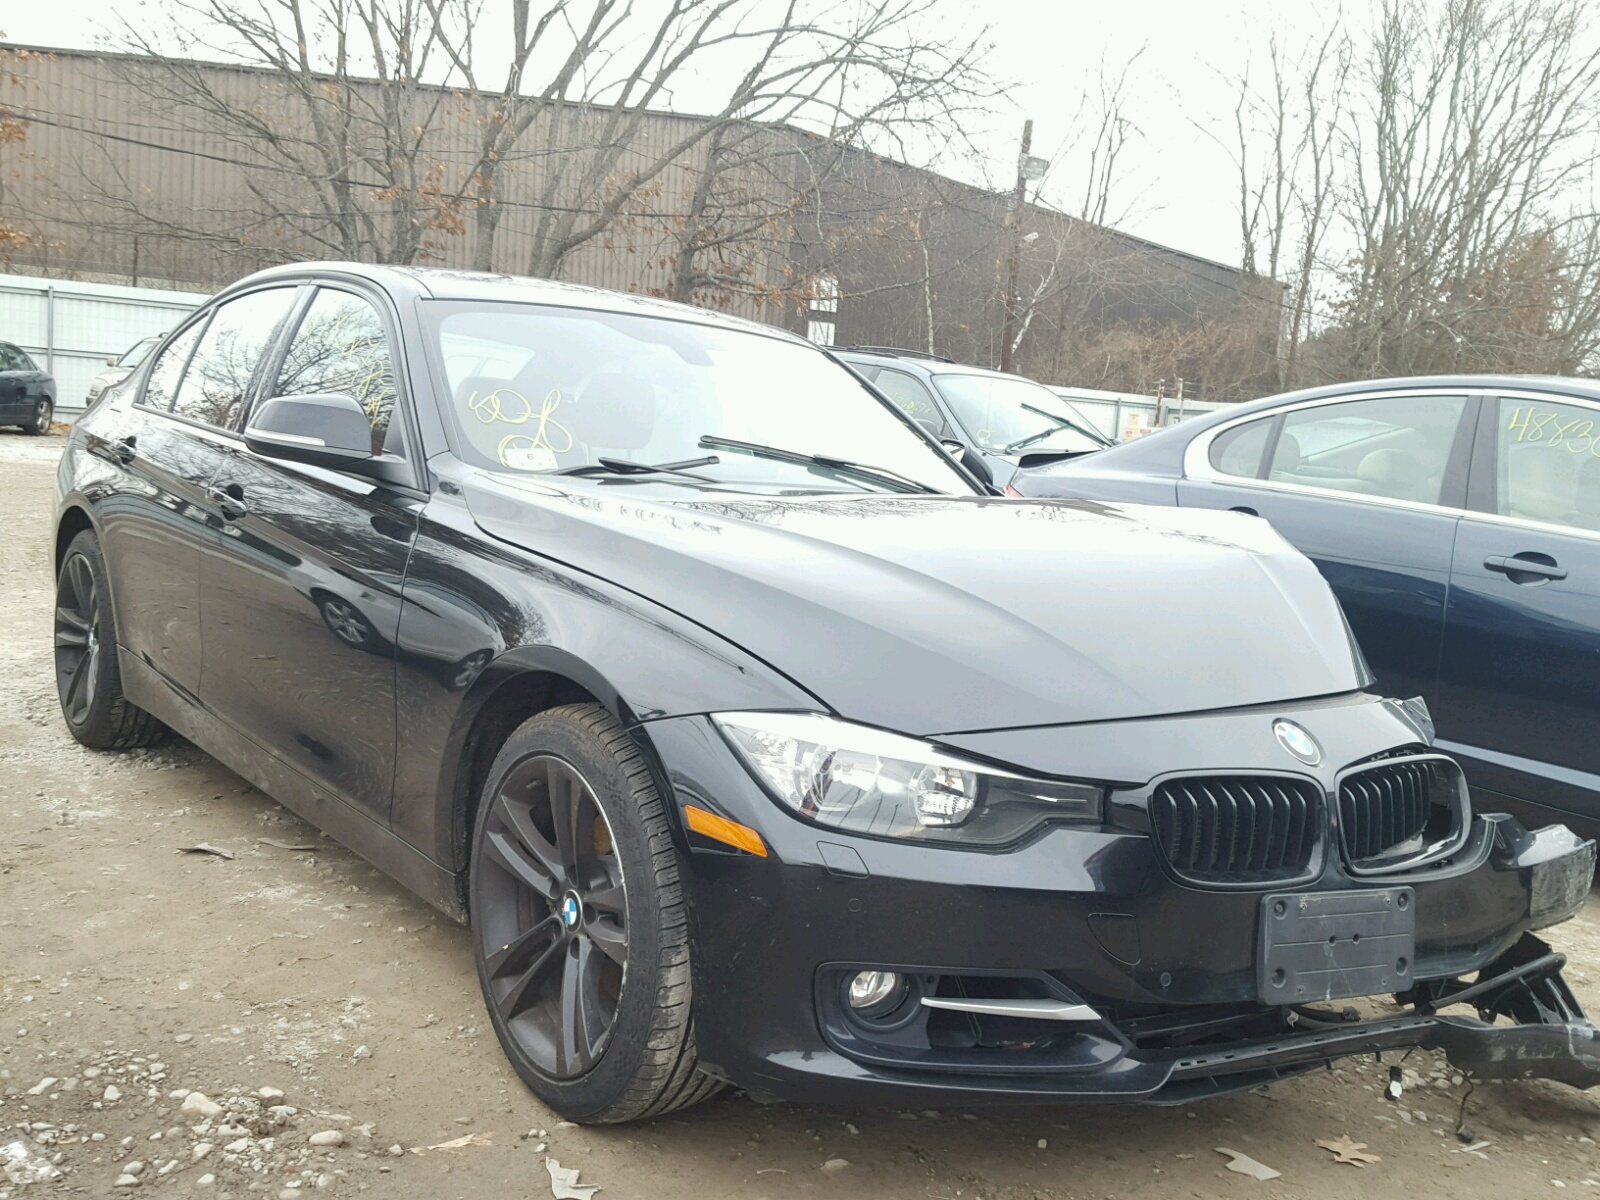 Auto Auction Ended On Vin Wba3b9g51enr79371 2014 Bmw 335xi In Mi Detroit